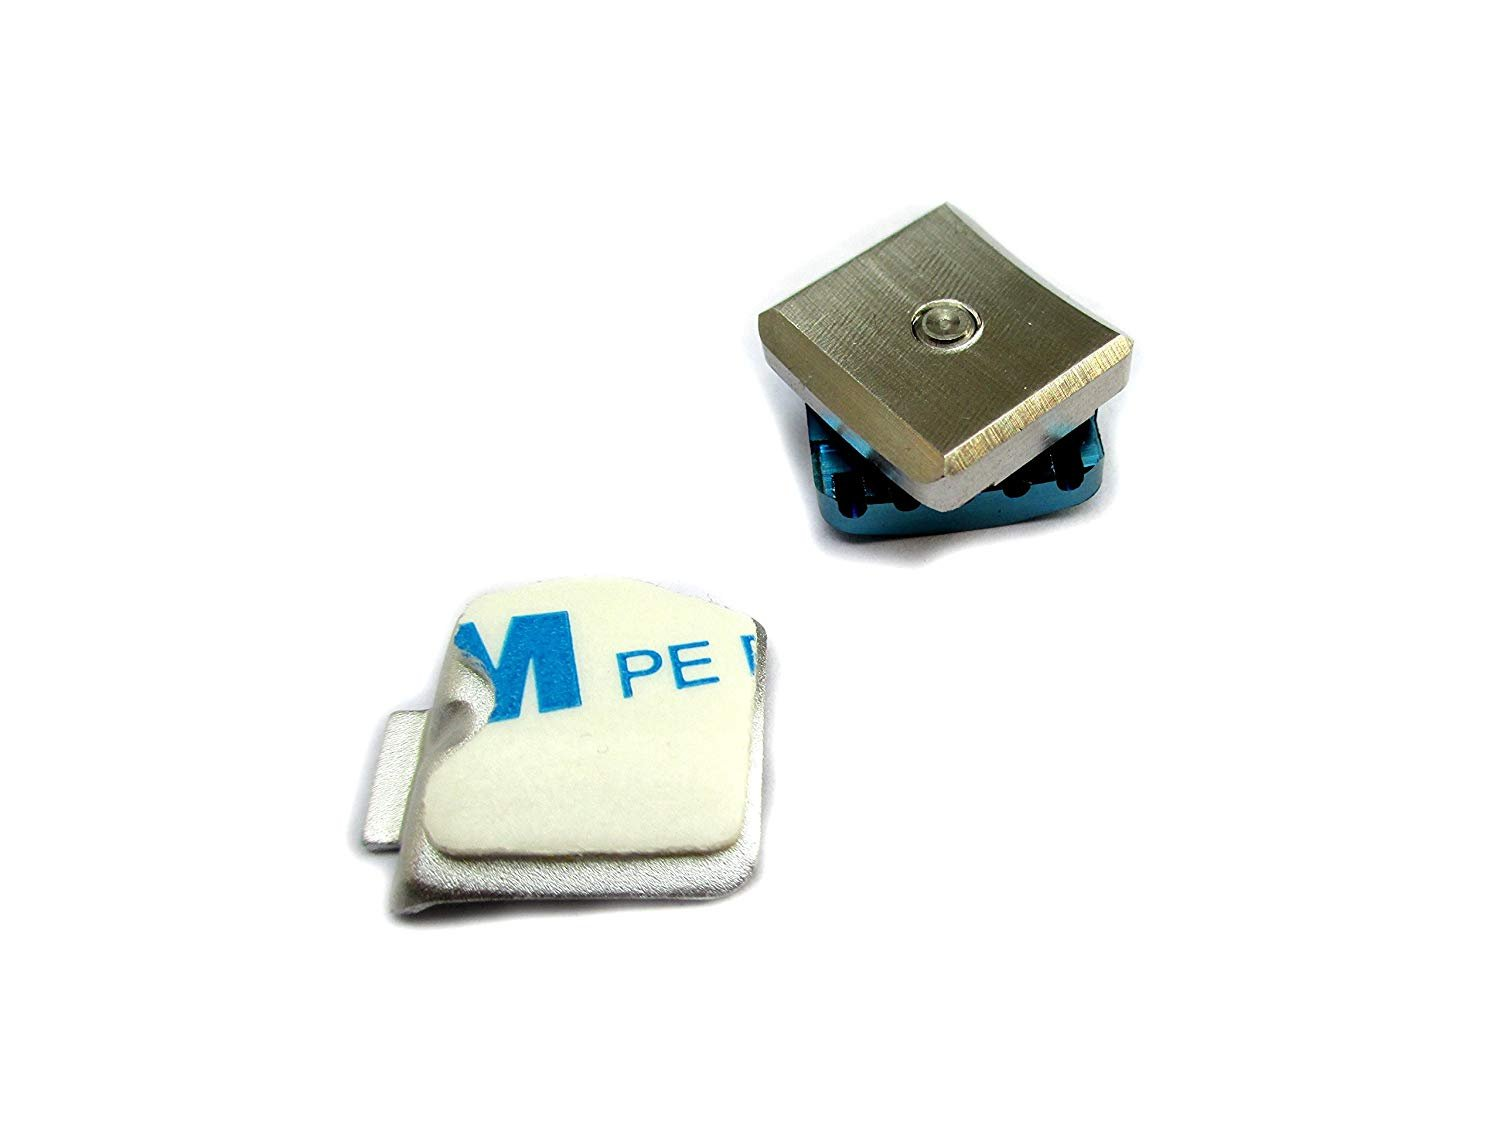 NEW! Movable Weight 10g Blue Set Sliding Weight For Taylormade SLDR Golf Driver Club by XIAMI (Image #2)